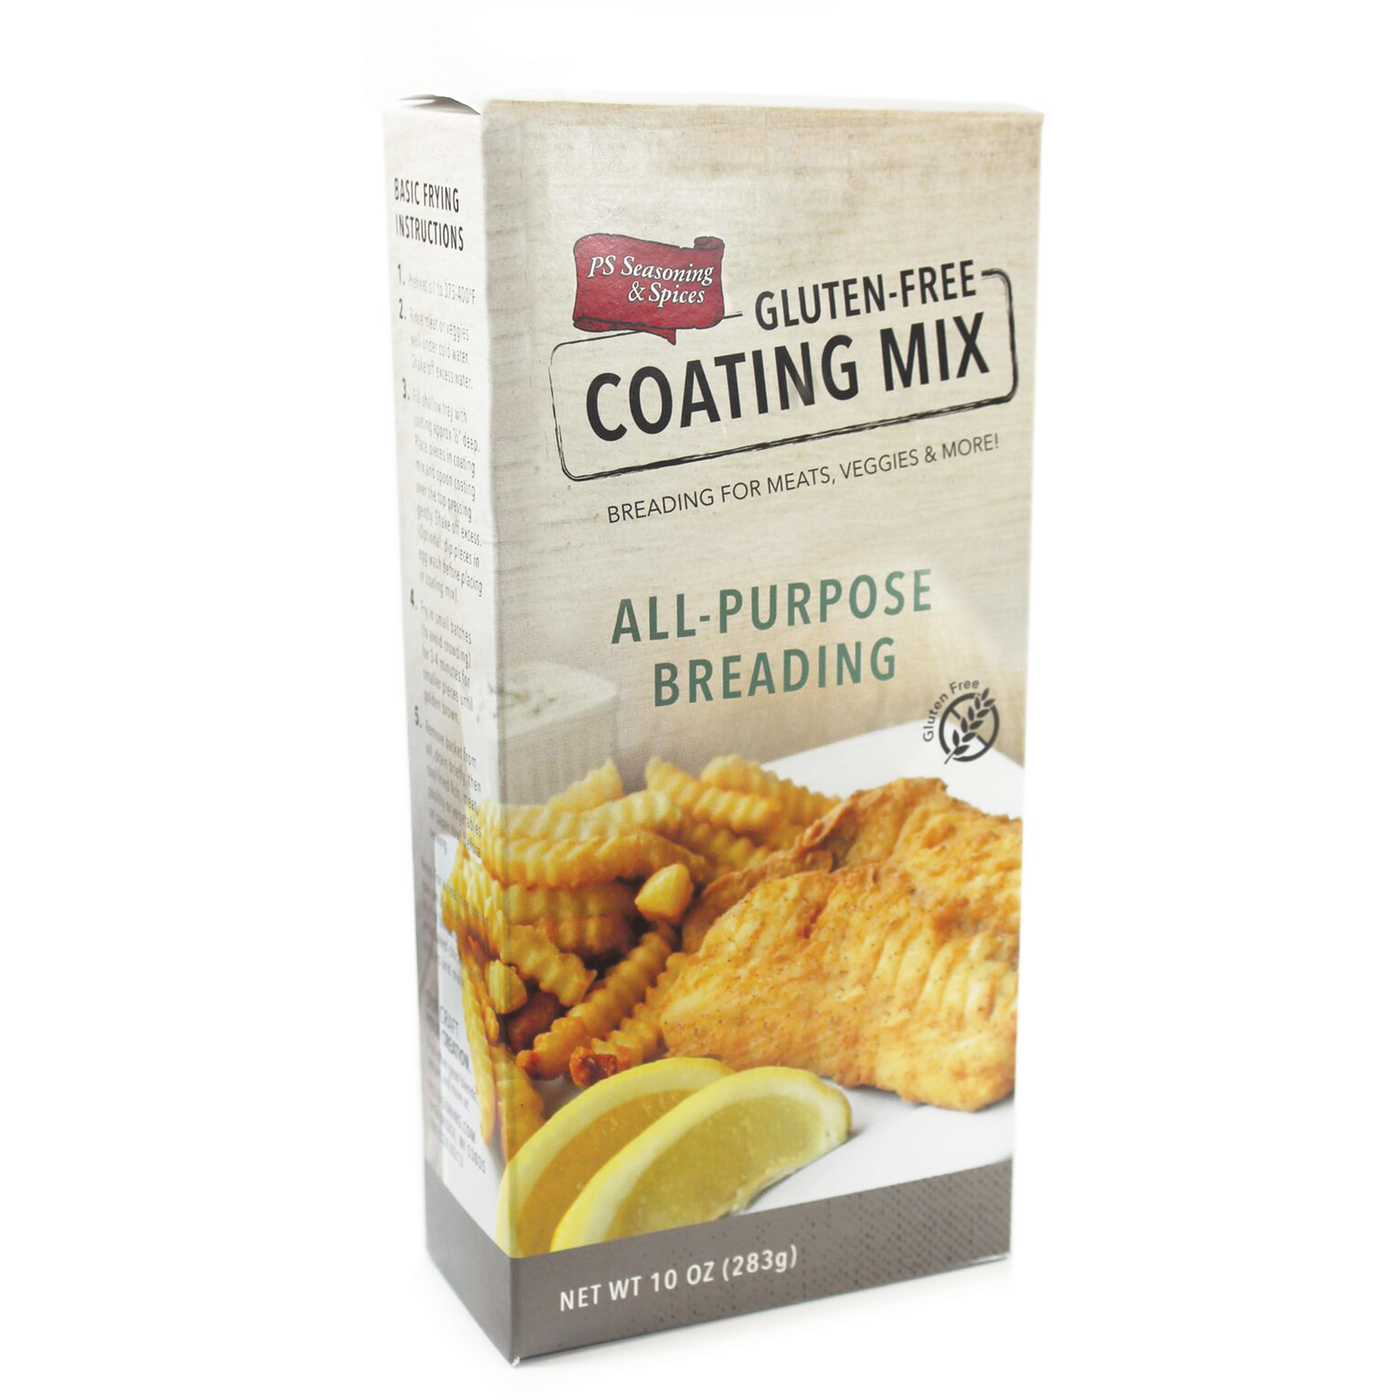 Gluten Free All Purpose Coating Mix Ps Seasoning Amp Spices